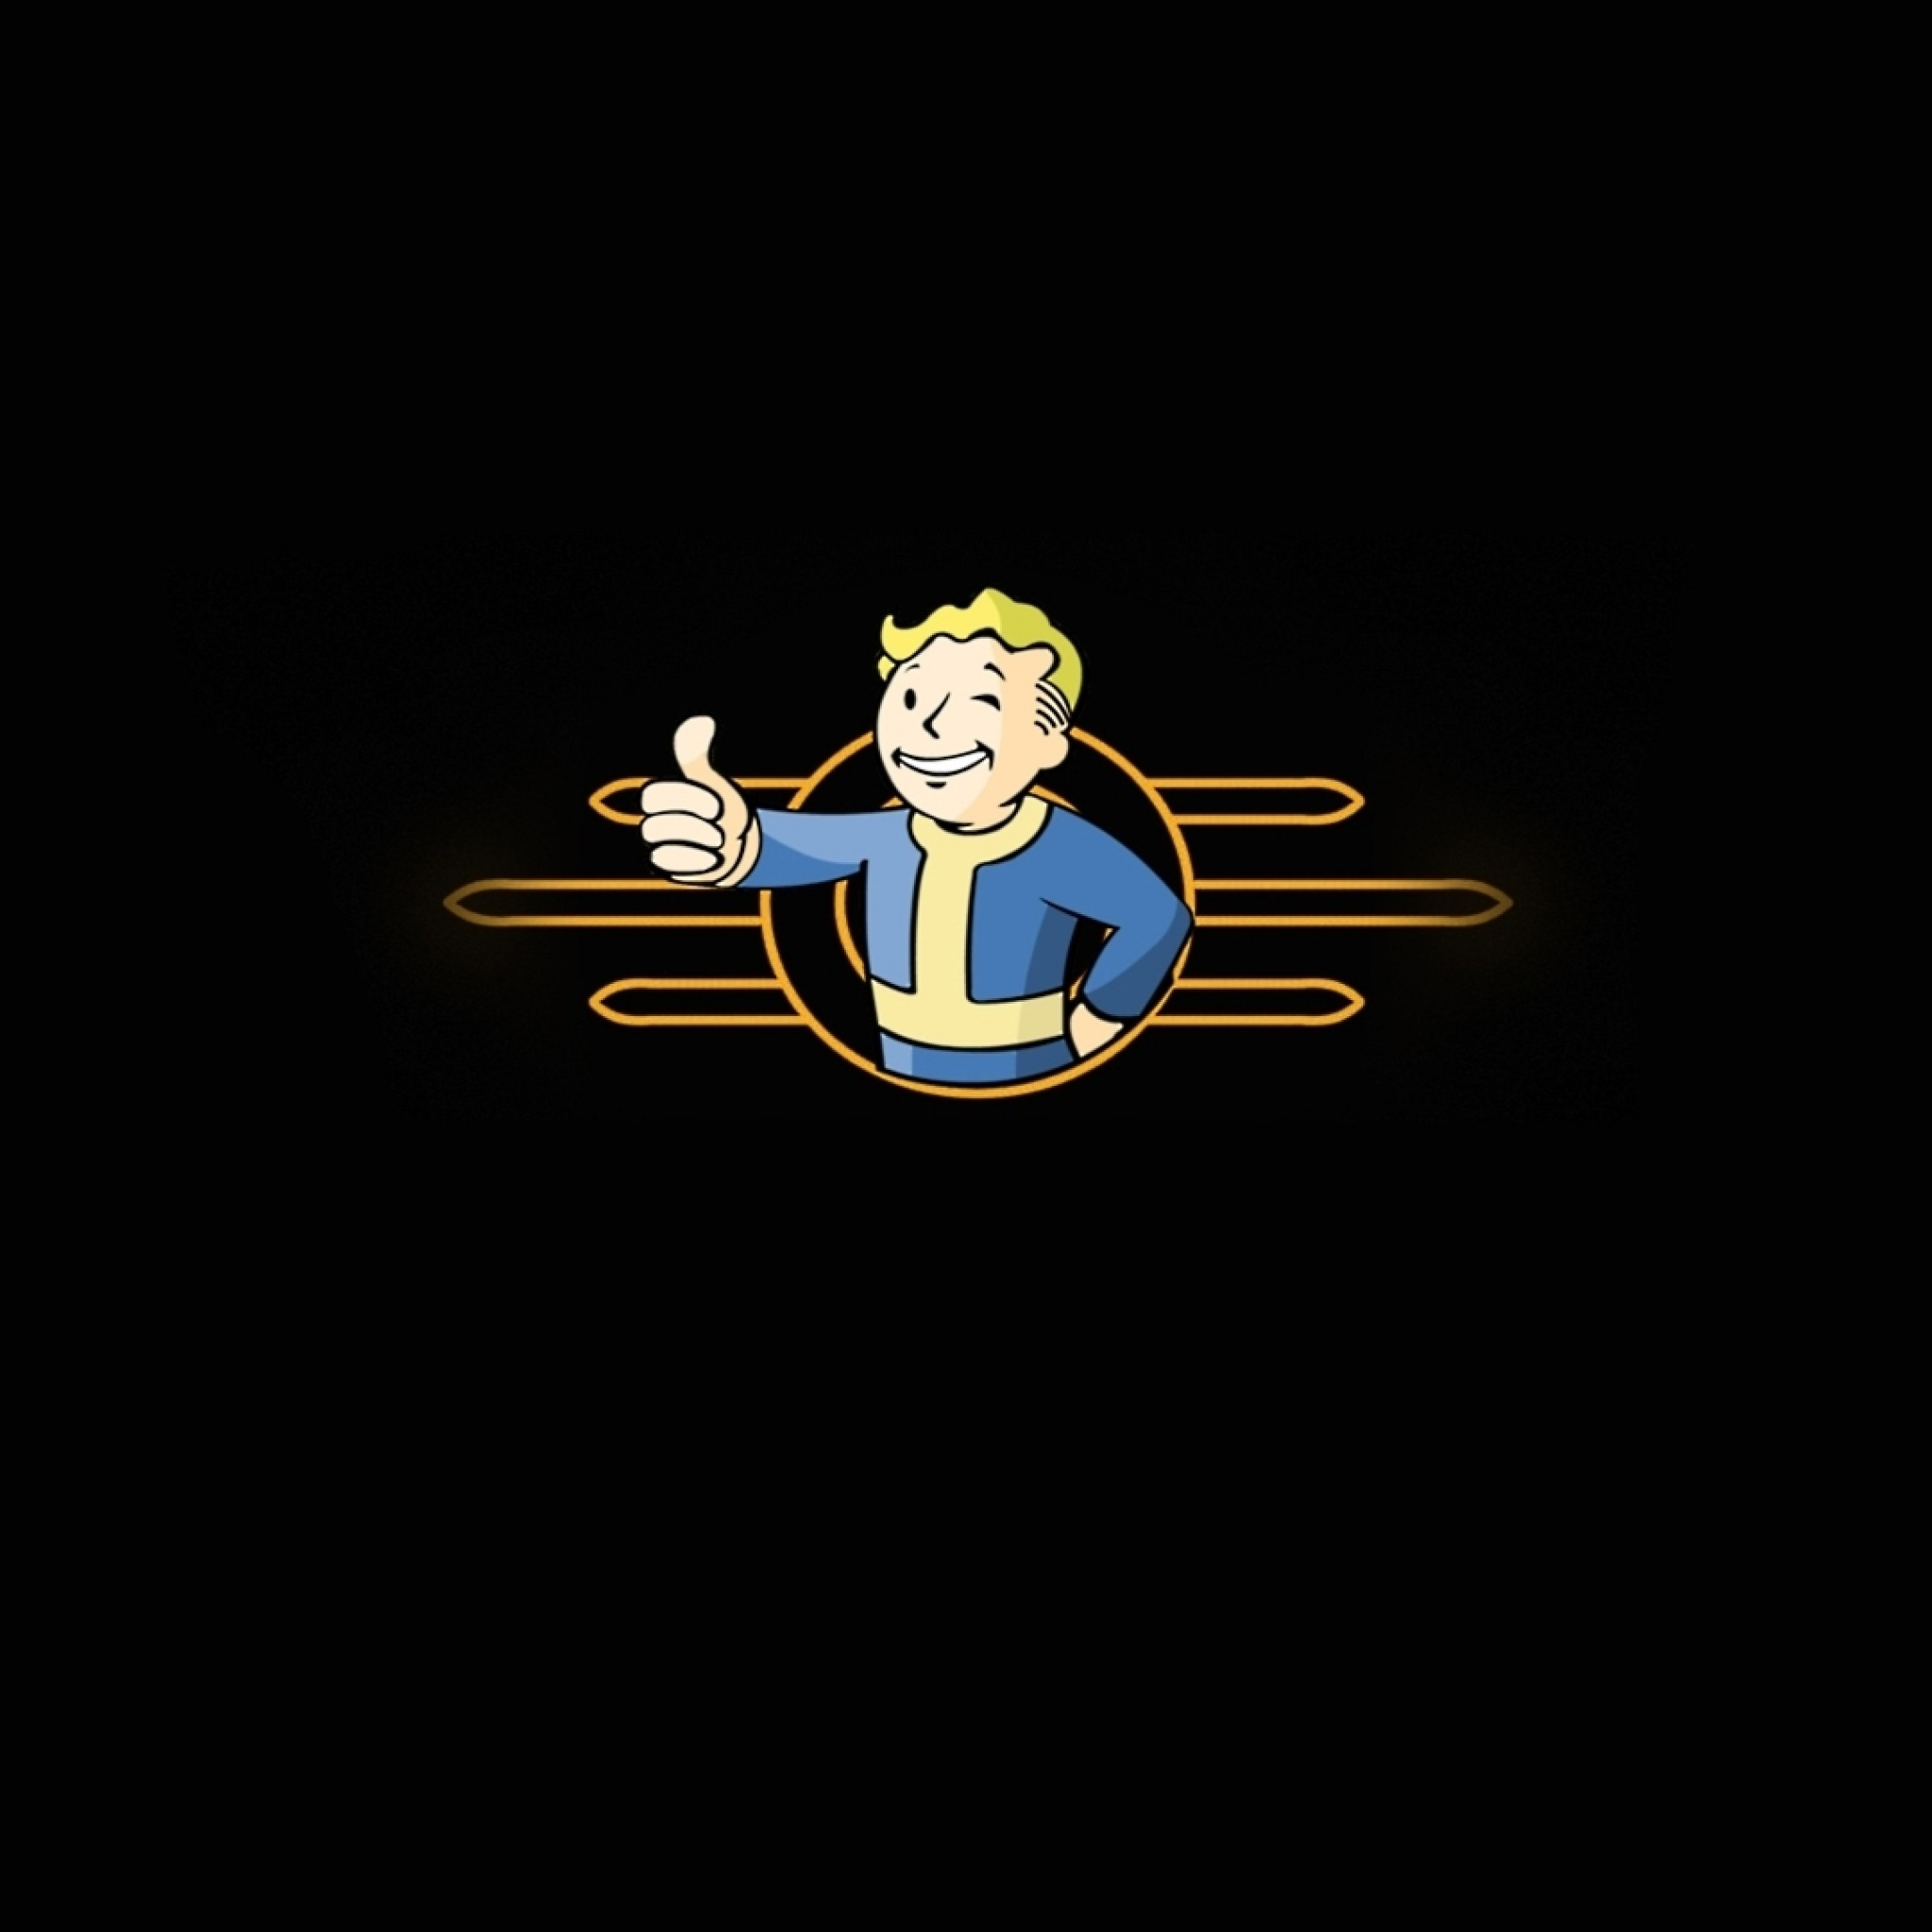 Free Download Fallout 3 Vault Boy Wallpapers And Backgrounds Games